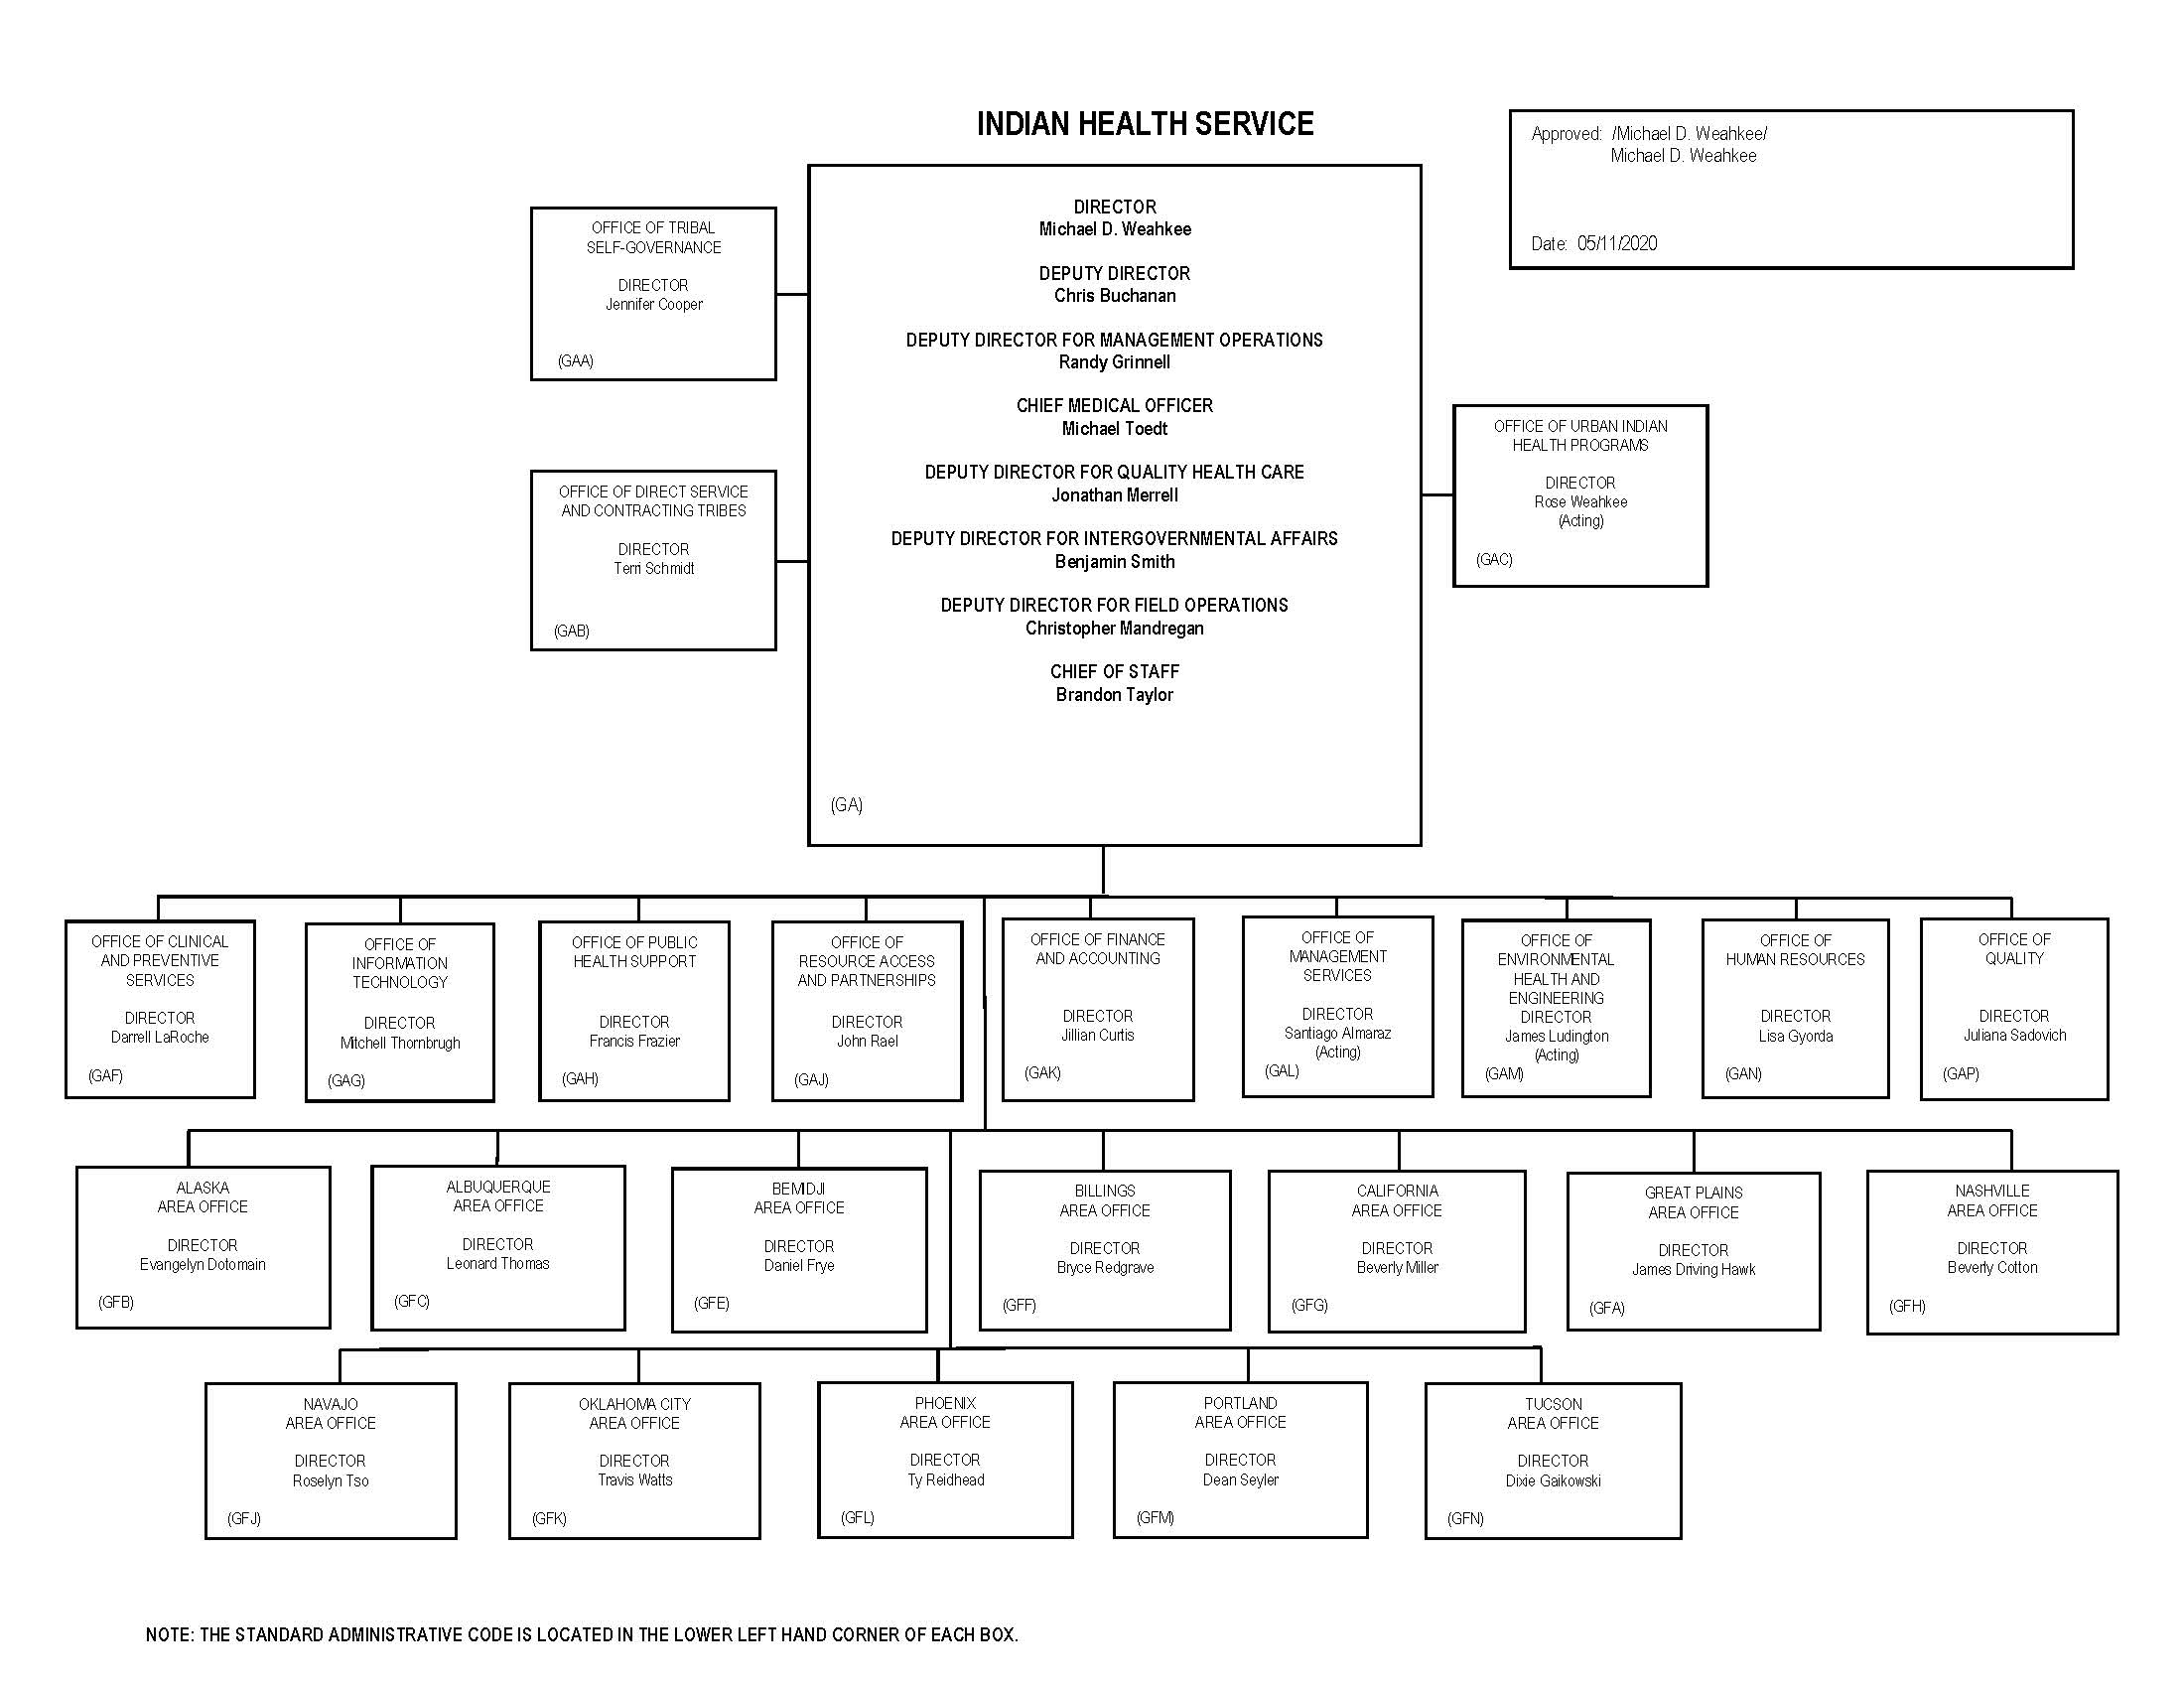 Organizational Structure About Ihs